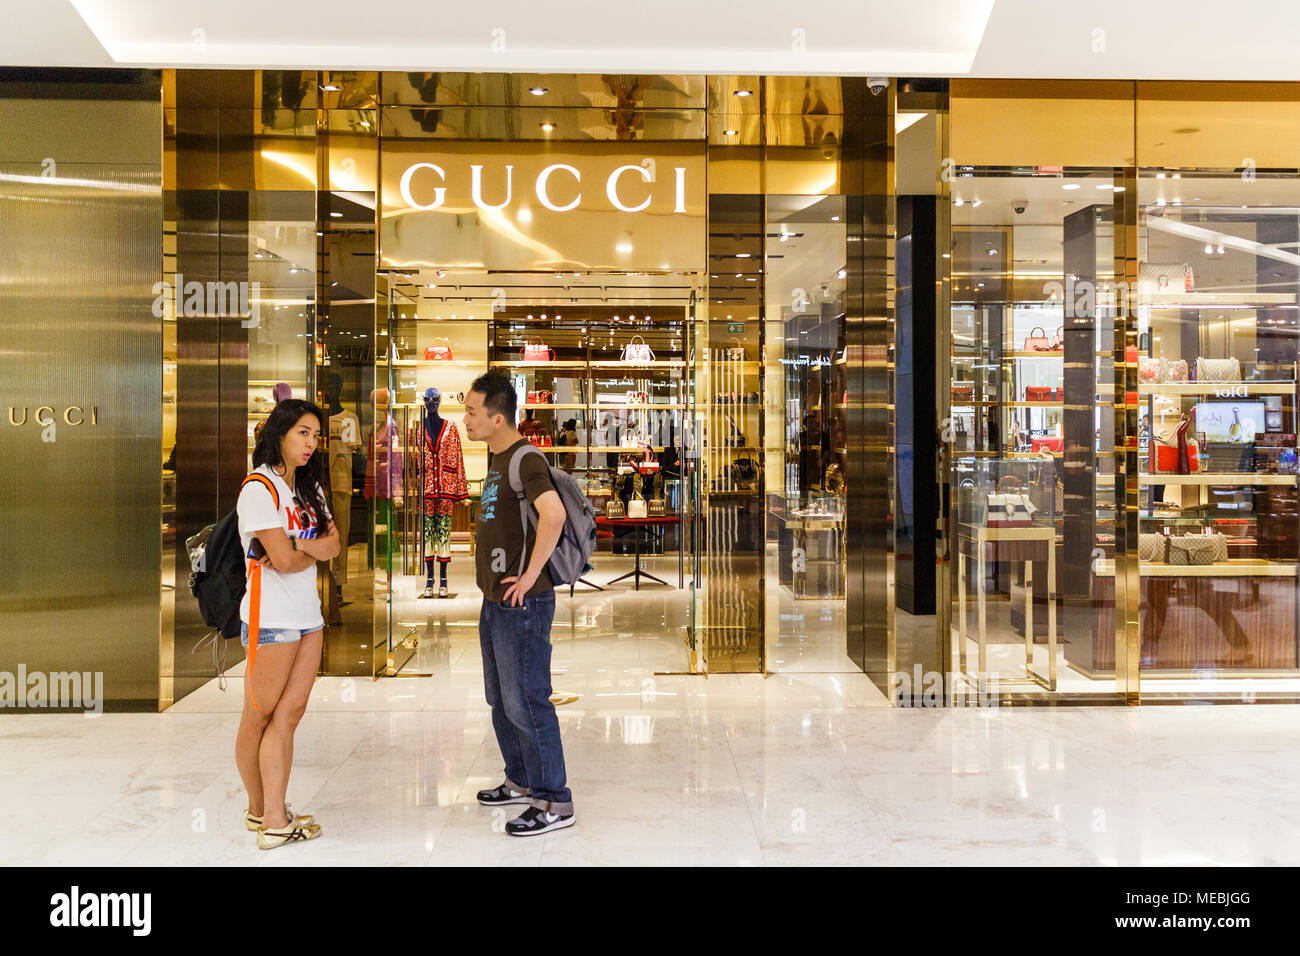 4989d14622b A Gucci Shop Stock Photos   A Gucci Shop Stock Images - Alamy